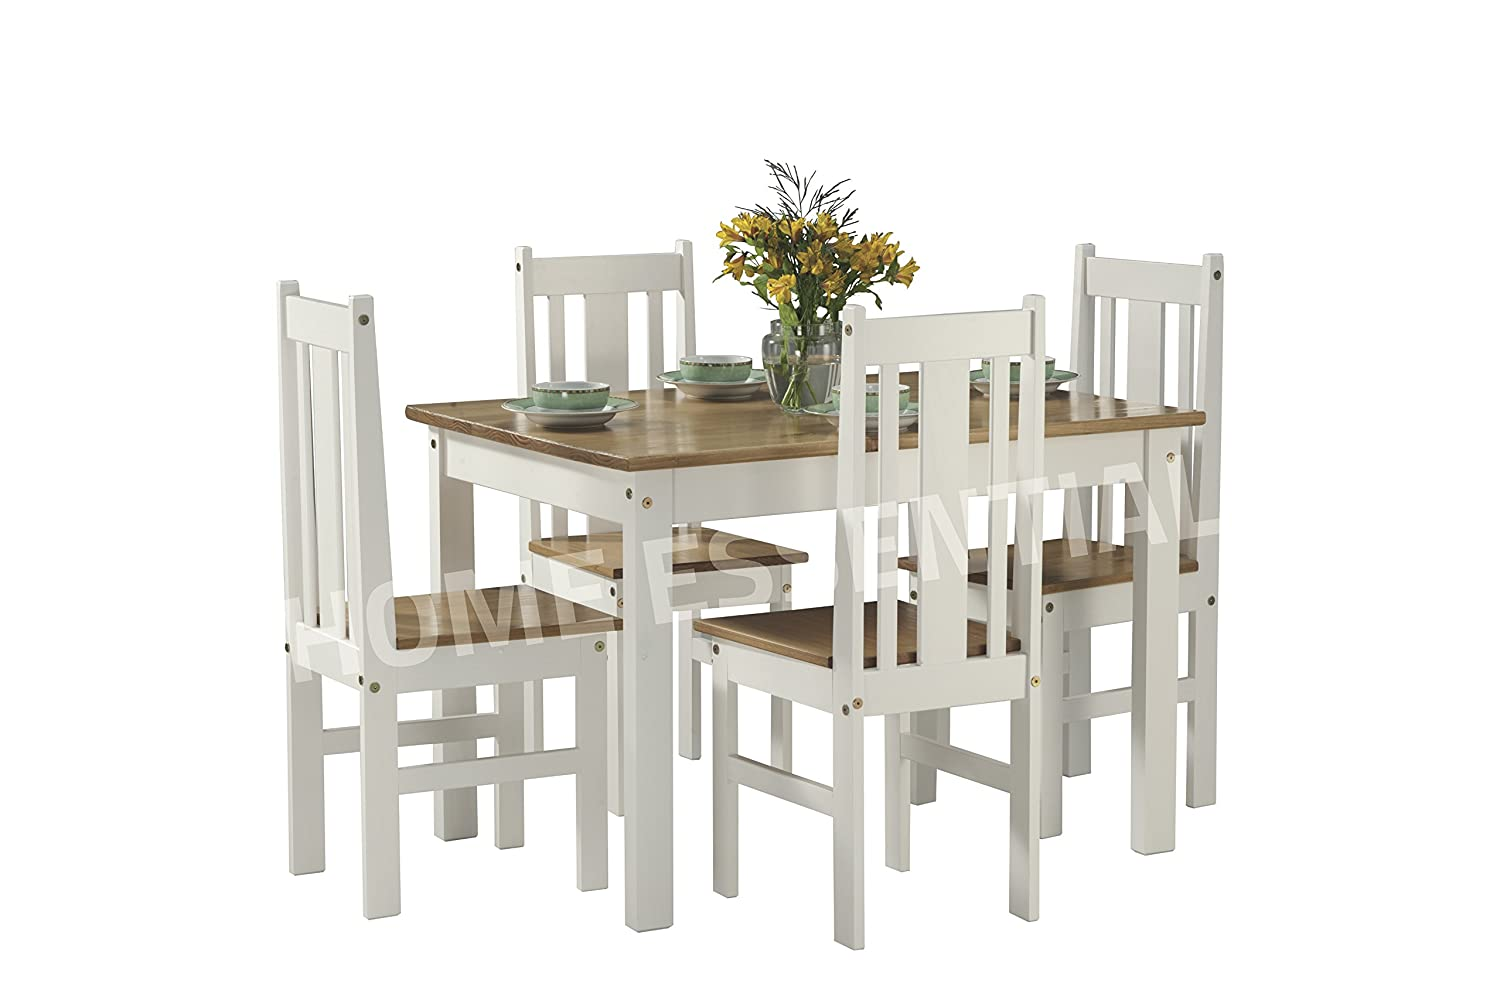 Home Essentials Inc Ellingham 4 Seater Oak and White Dining Set